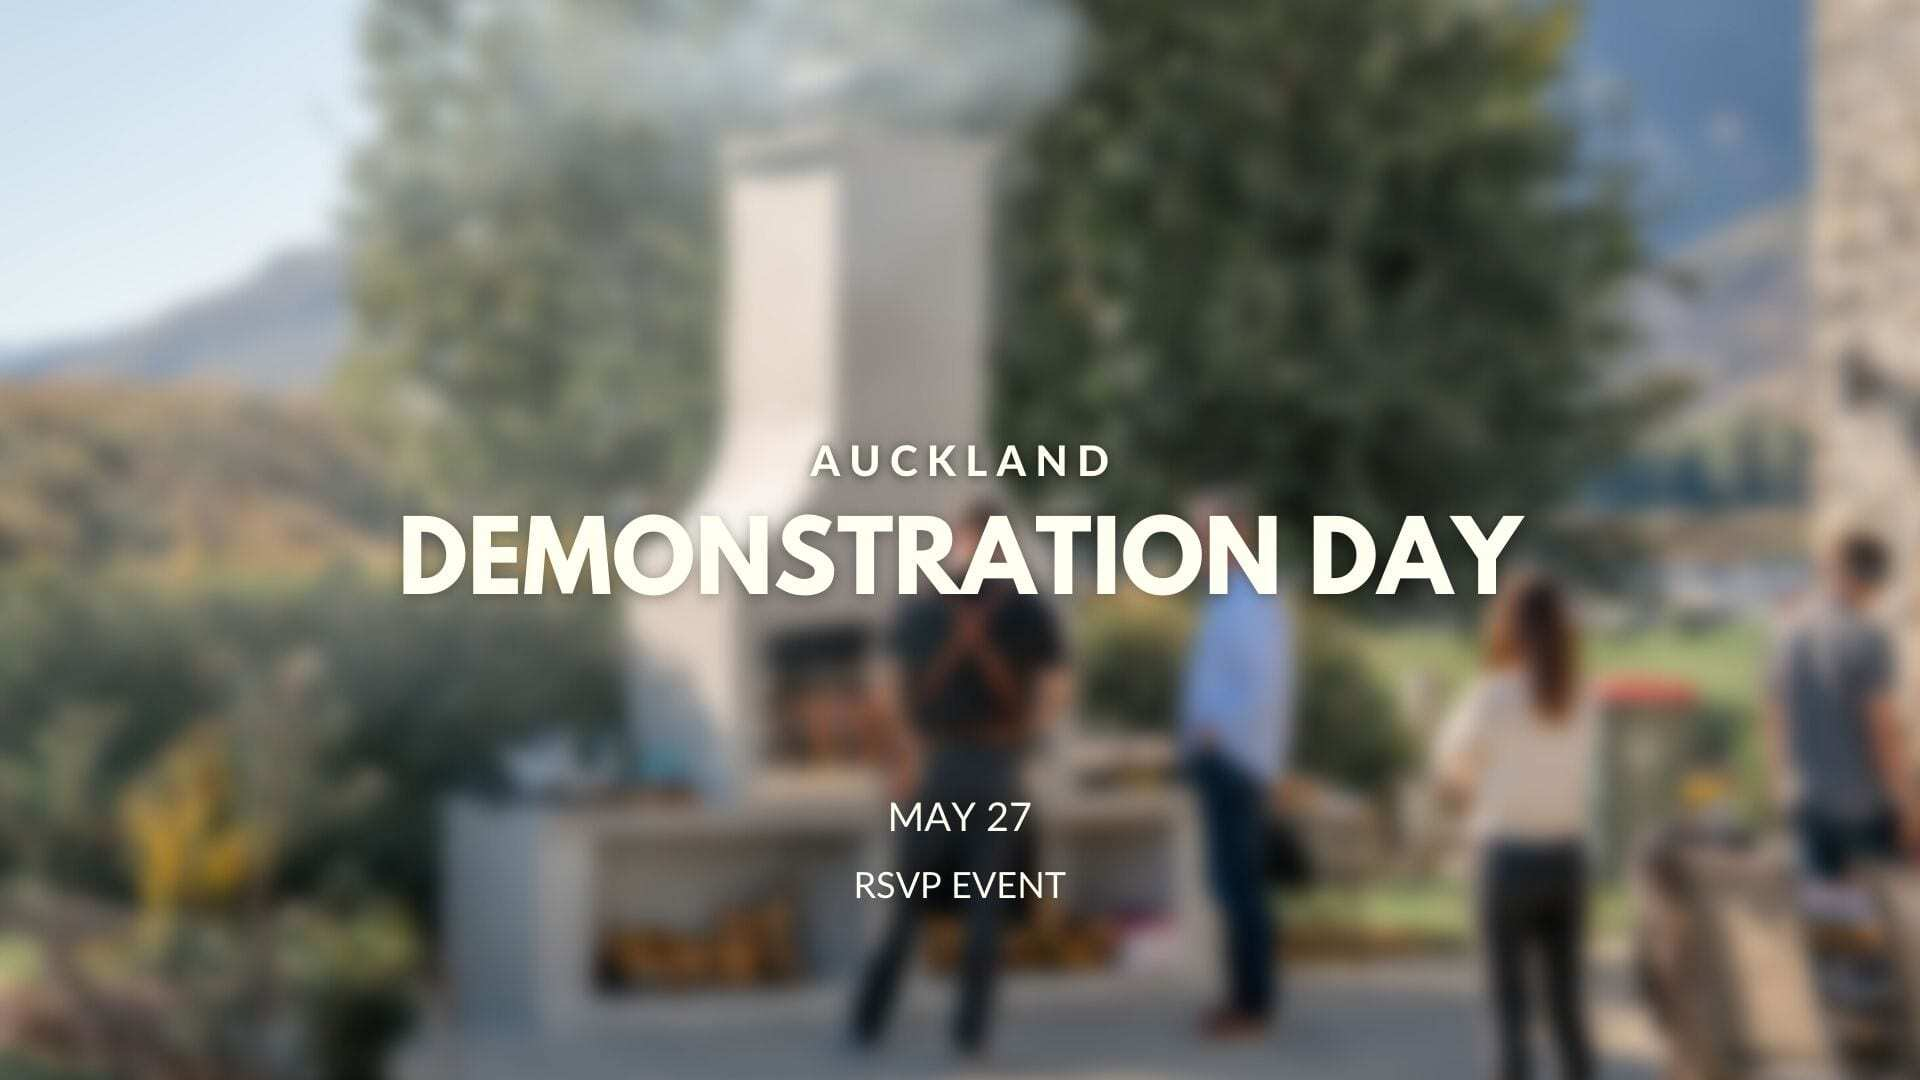 Flarefires Outdoor Fireplaces Demonstration Day Auckland on May 27